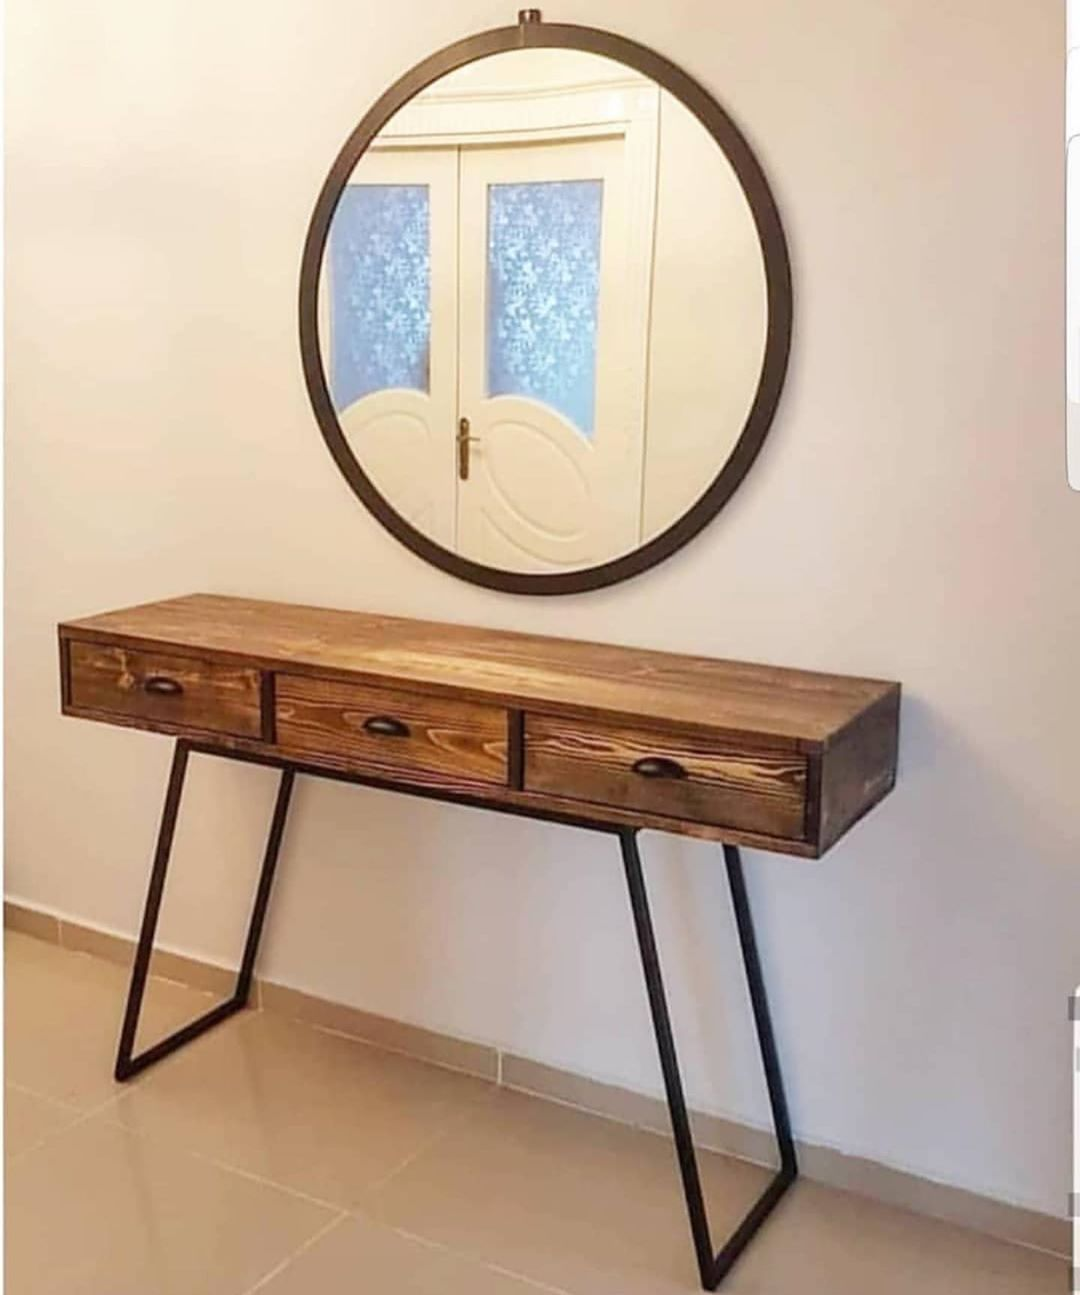 New Decor Trends for Home Designs and Ideas 2021 (147)